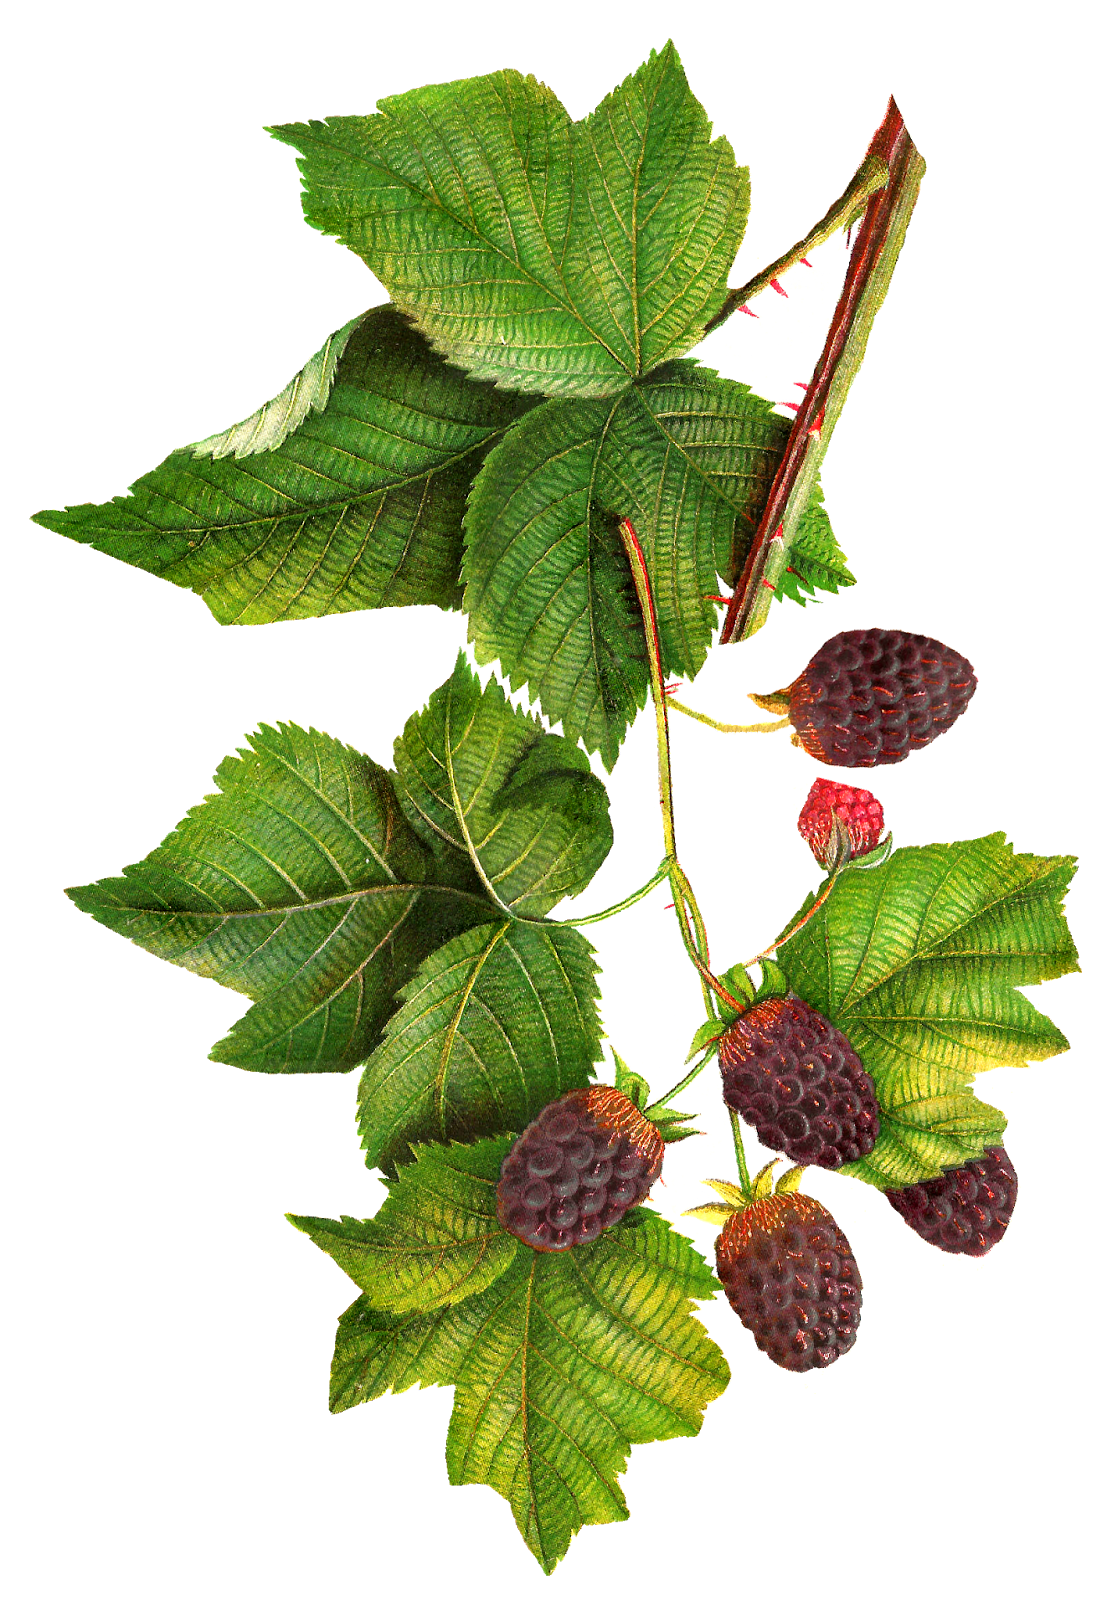 free  collection of jam. Blackberry drawing bush